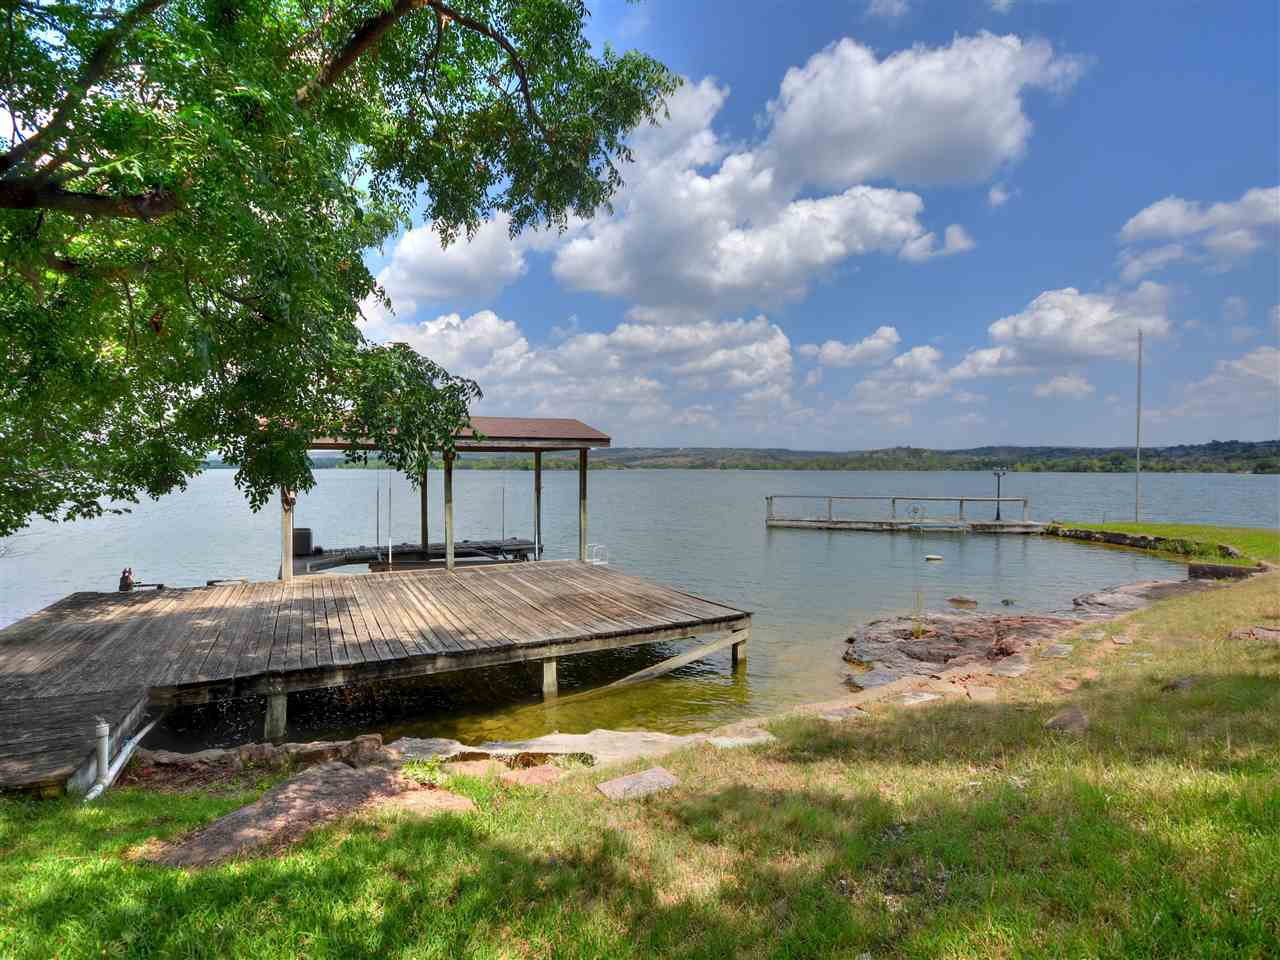 916 S Rockwood Drive Horseshoe Bay Real Estate Home Listings - RE/MAX Horseshoe Bay Resort Sales, Co. Lake LBJ Real Estate